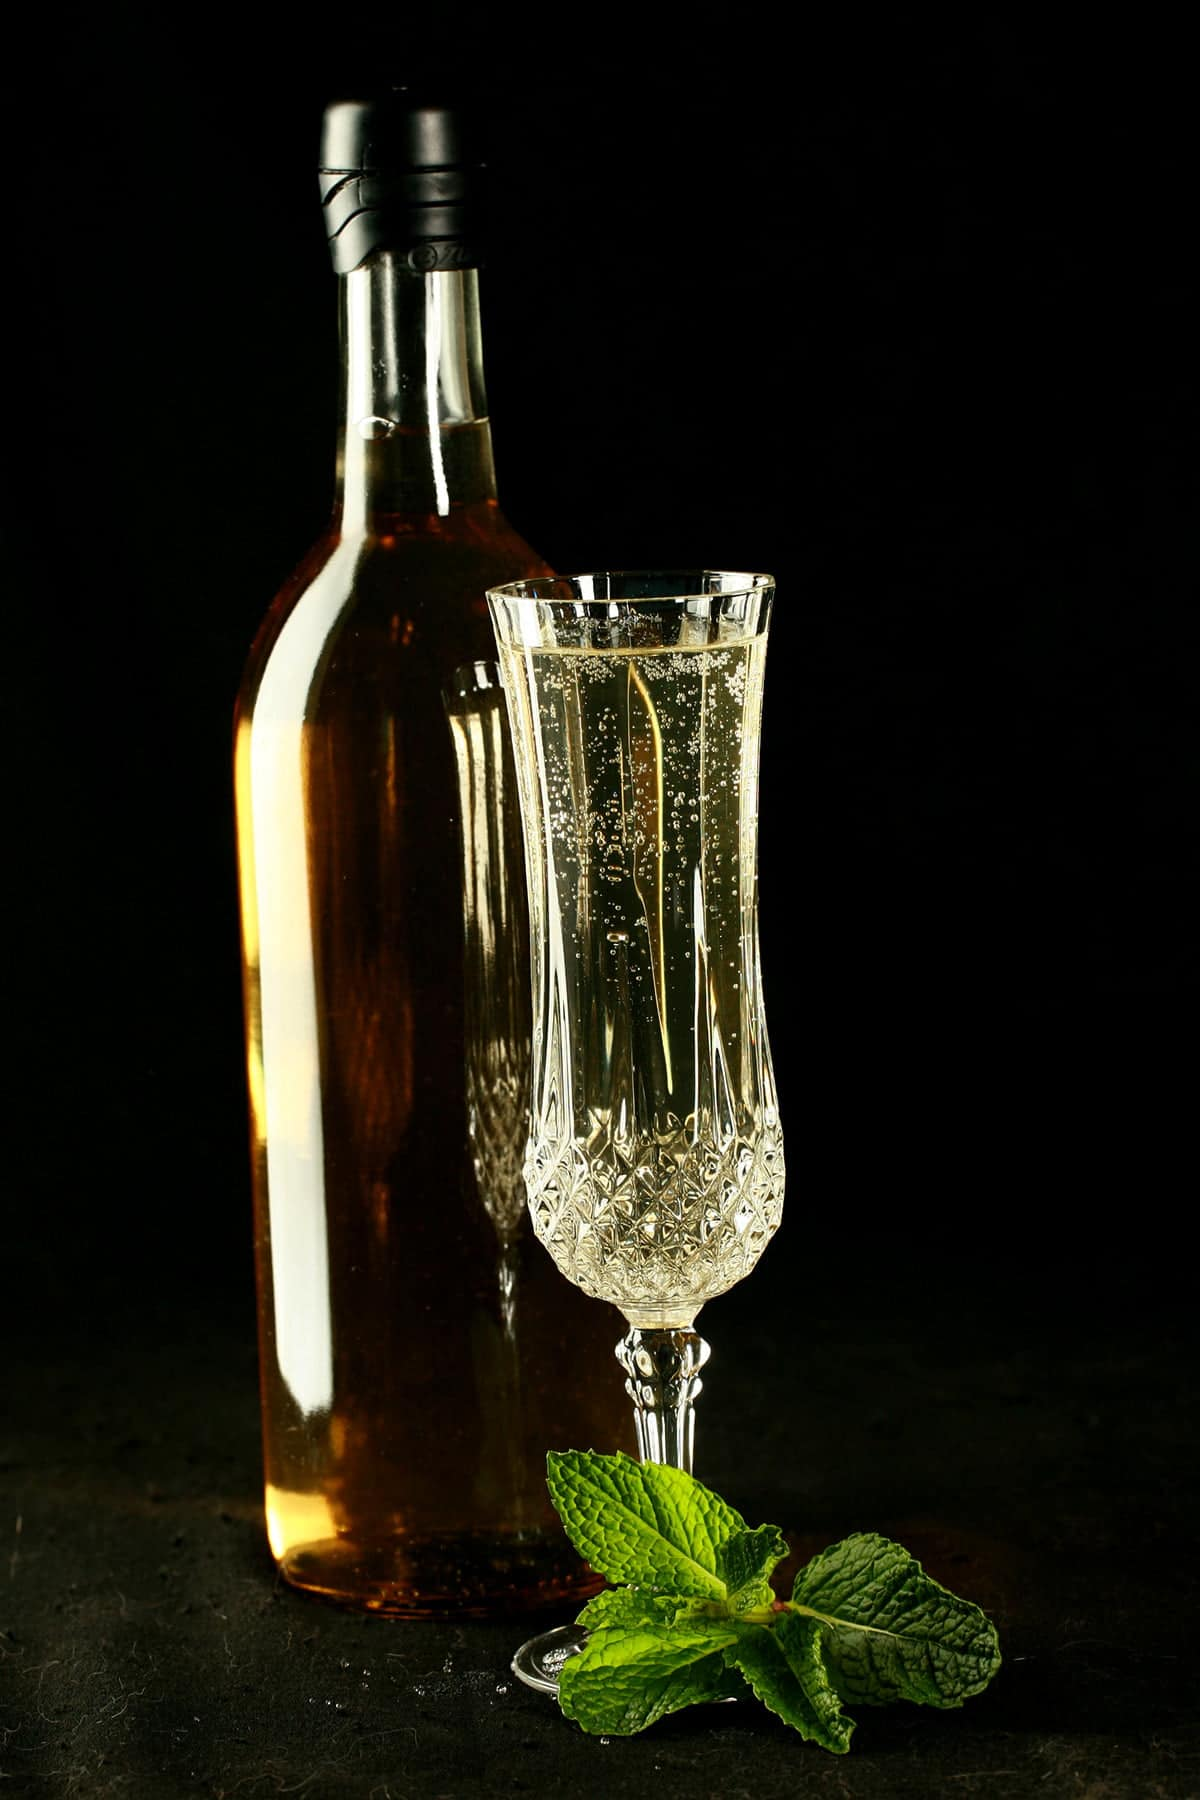 A full wine bottle and a glass of mint wine. There is a spring of mint at the base of the glass, everything is against a black background.